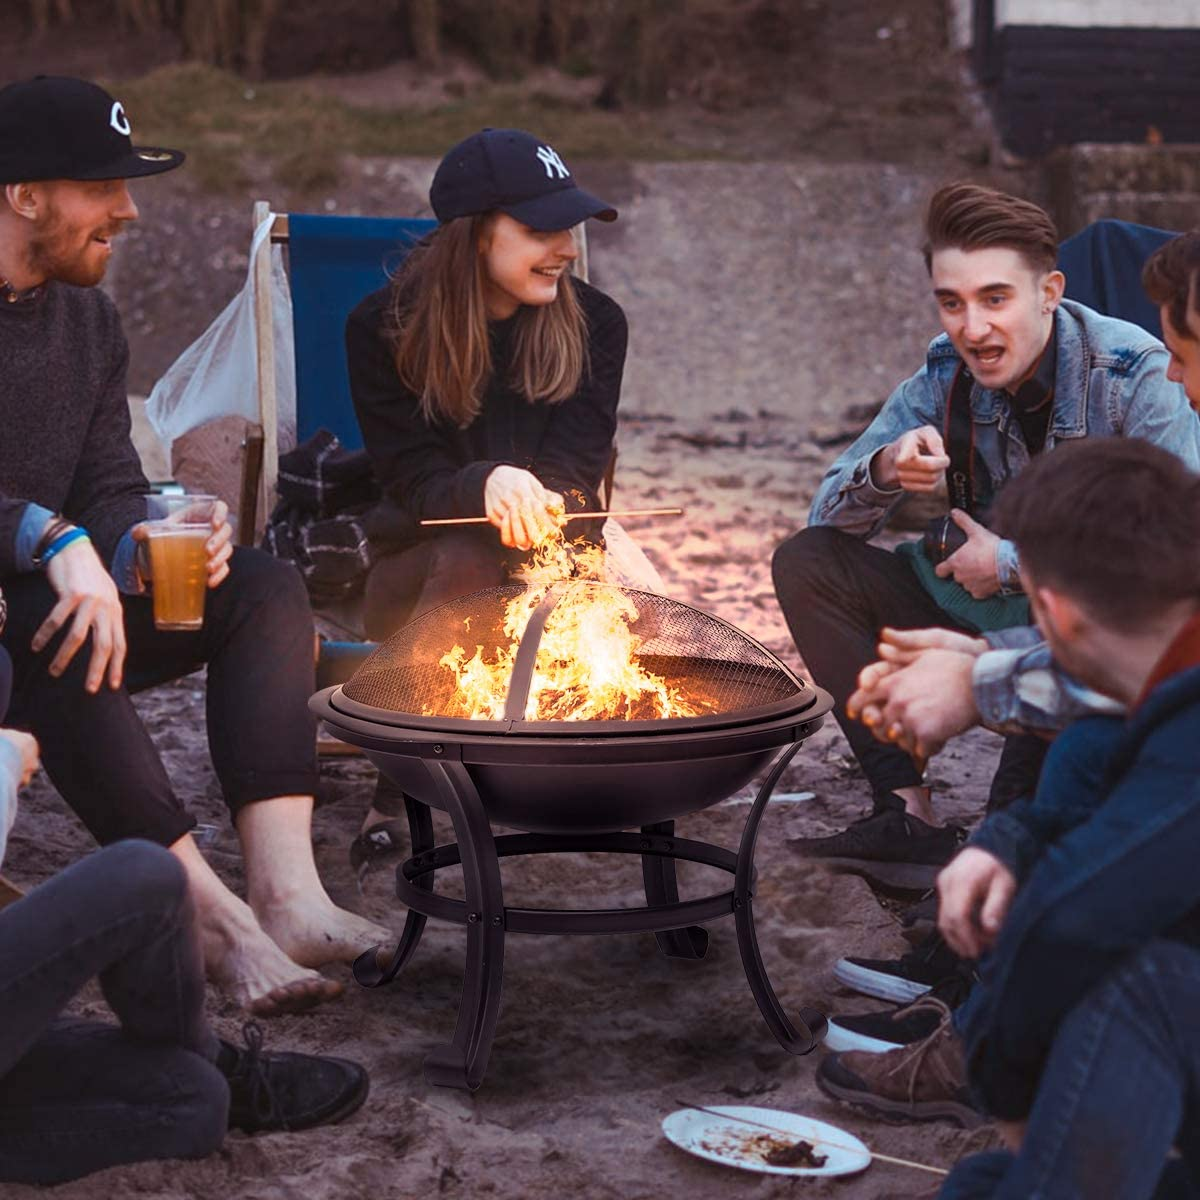 Best Fire Pit Under 50 Reviews and Buying Guide 2021